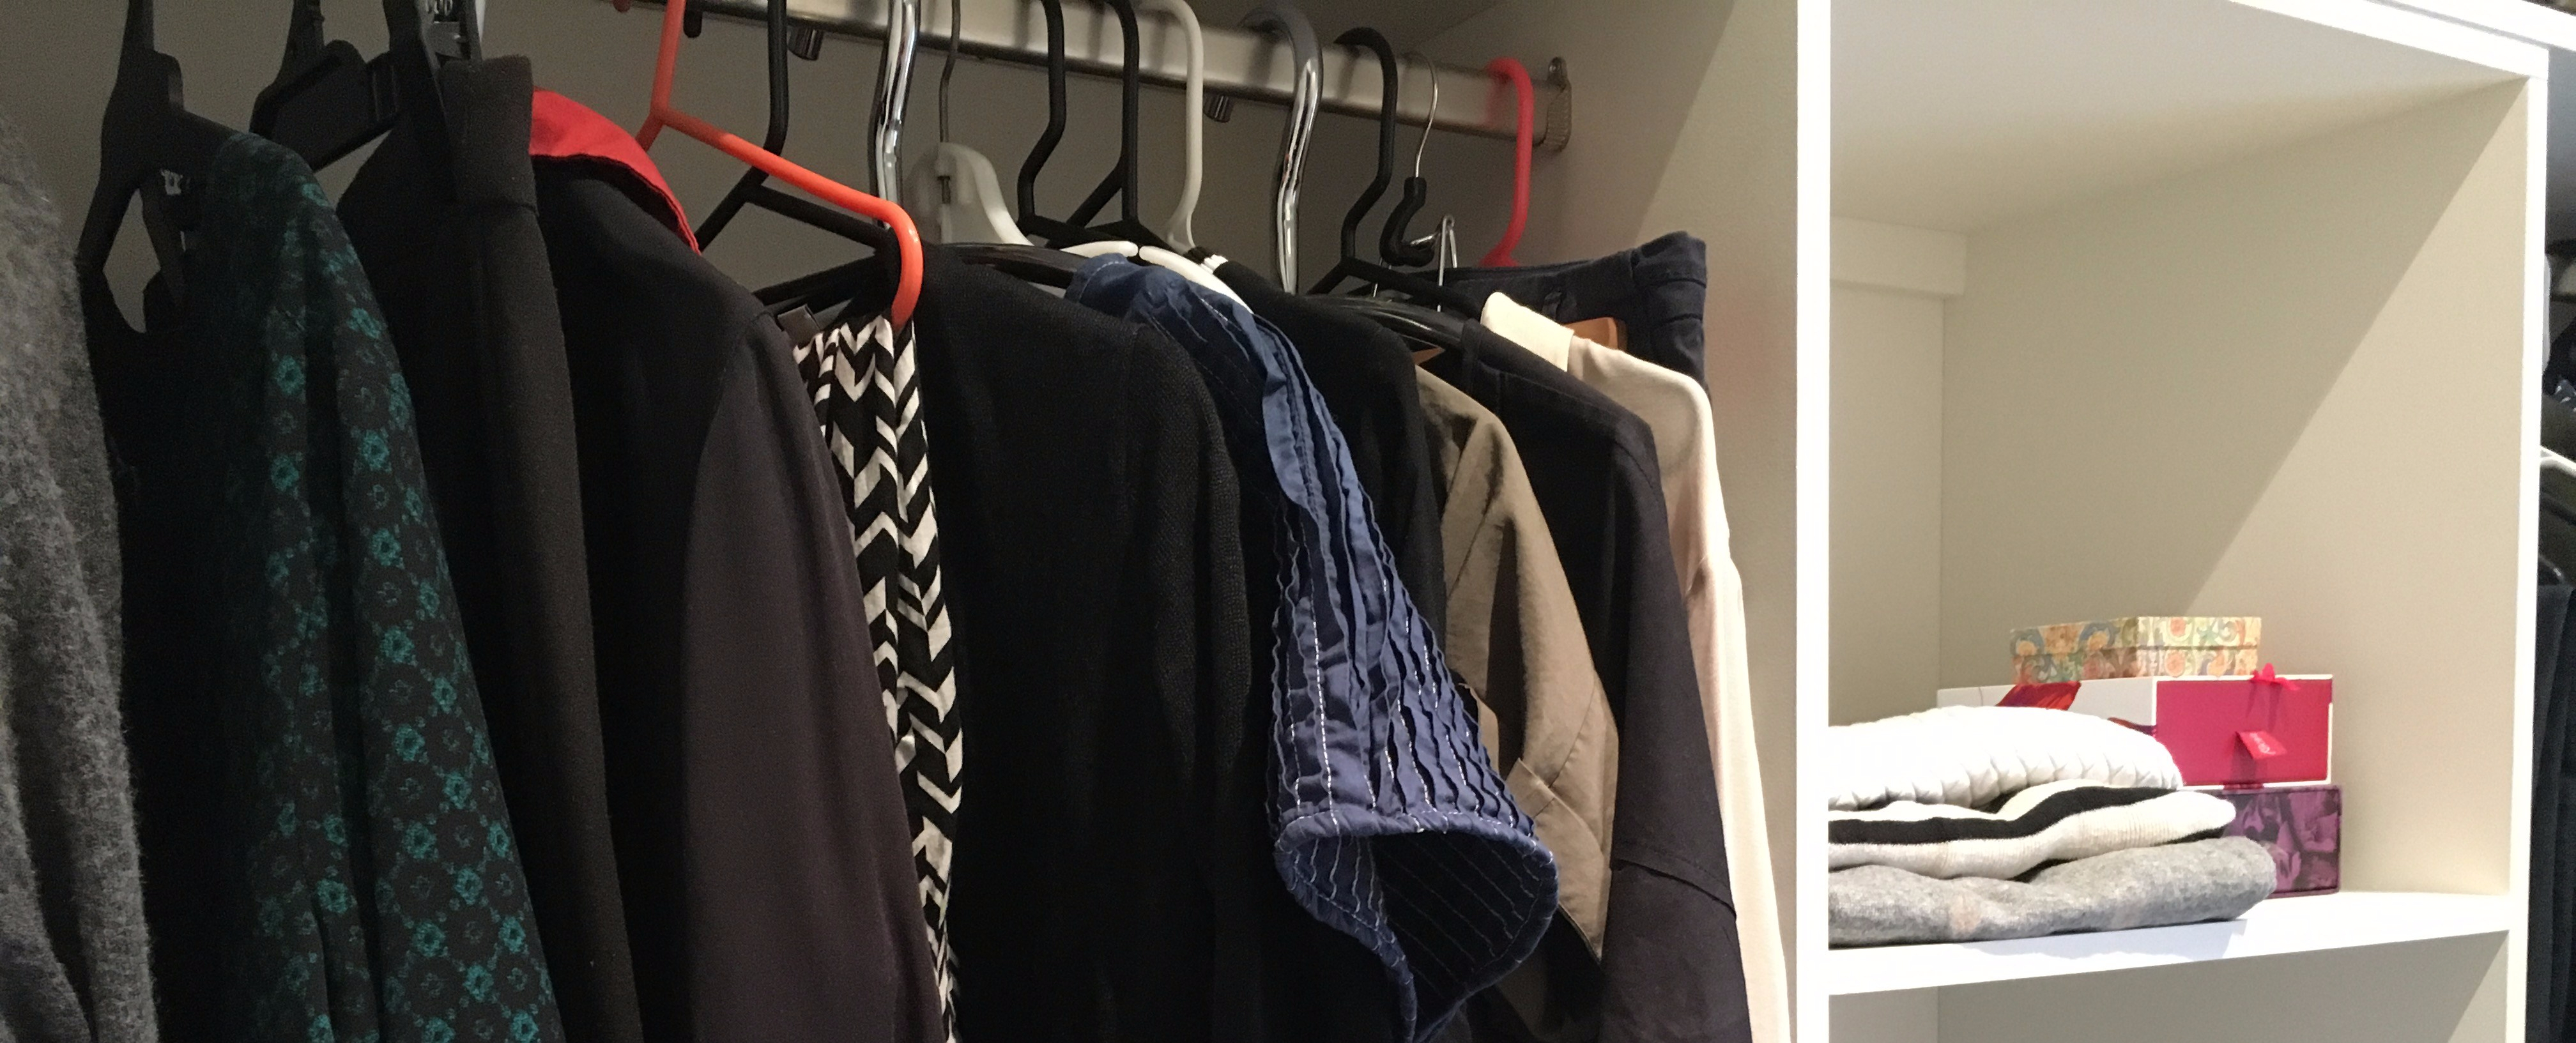 Five tips to get your capsule wardrobe sorted for winter